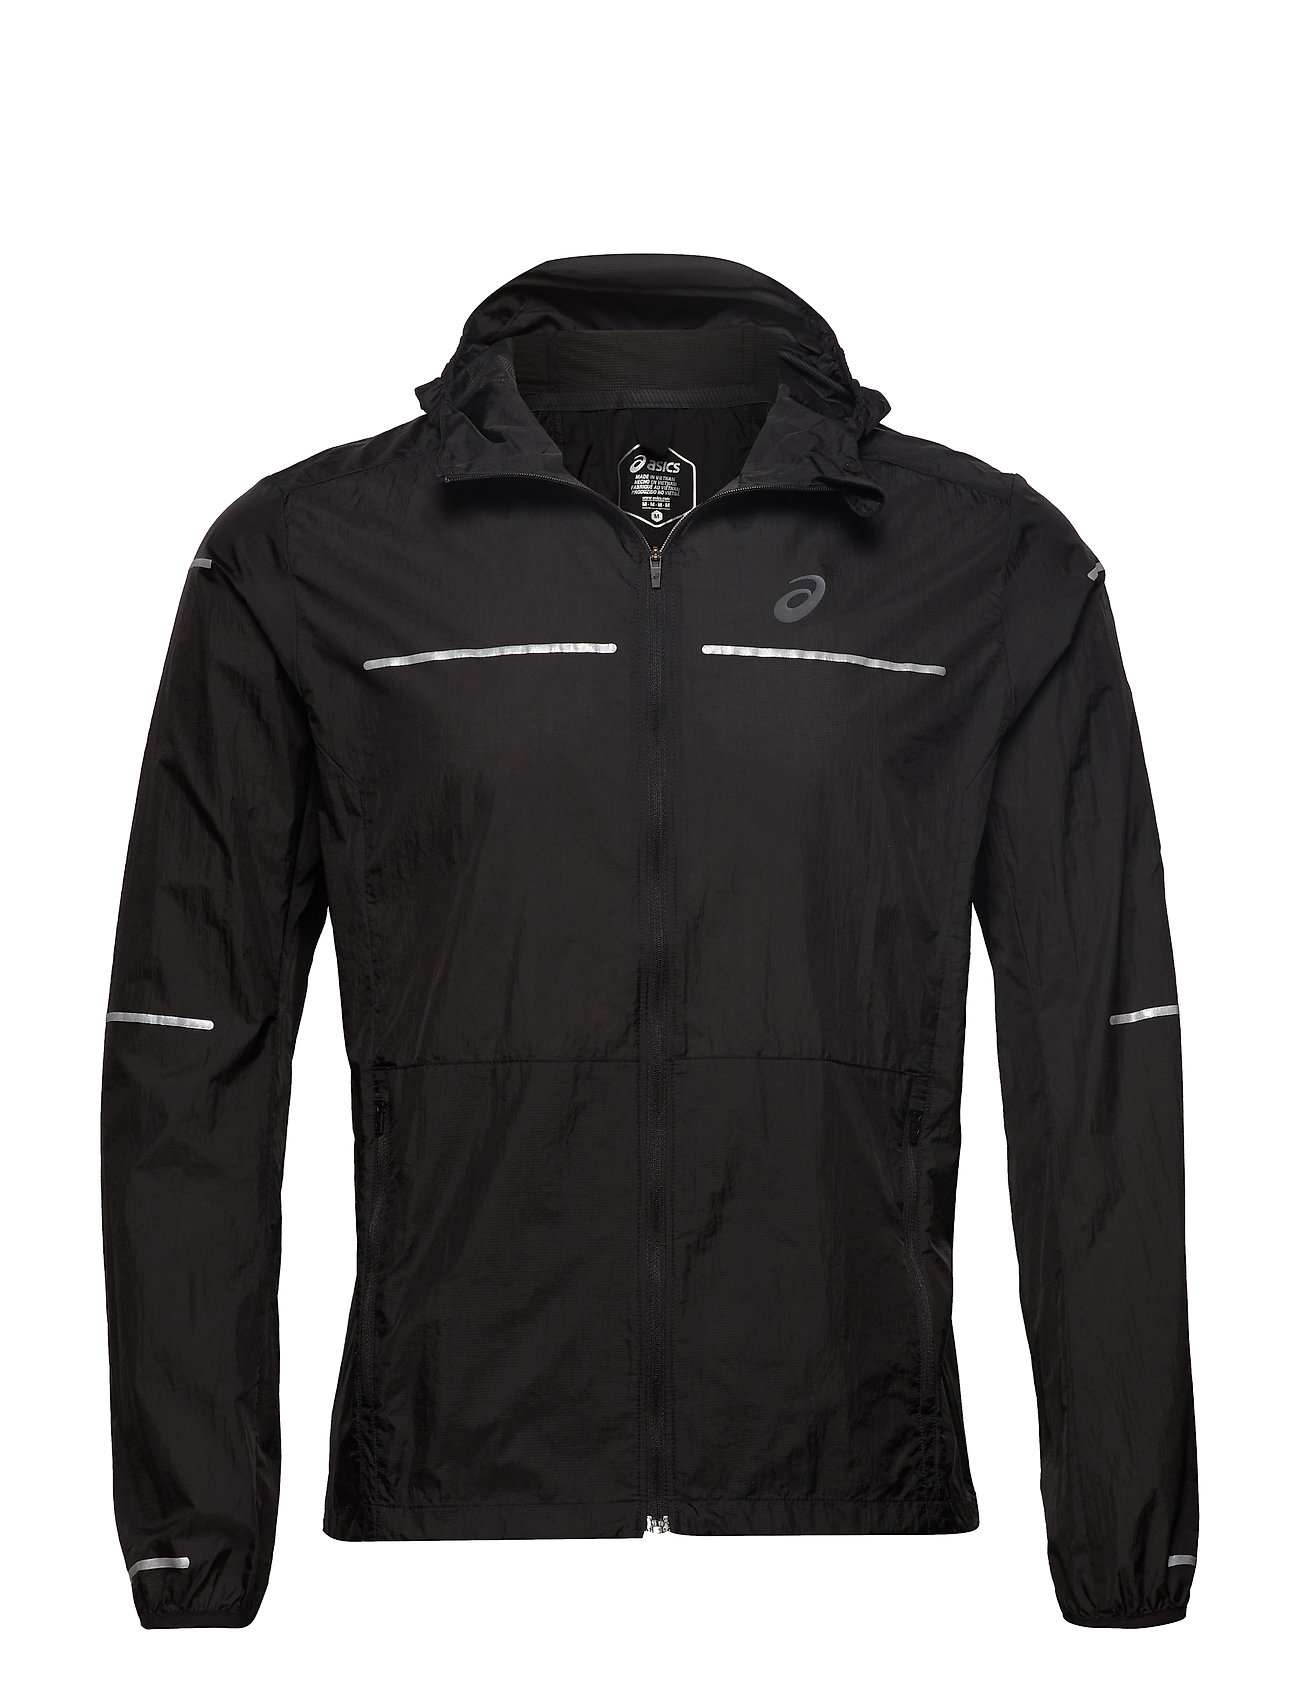 Asics LITE-SHOW JACKET - PERFORMANCE BLACK